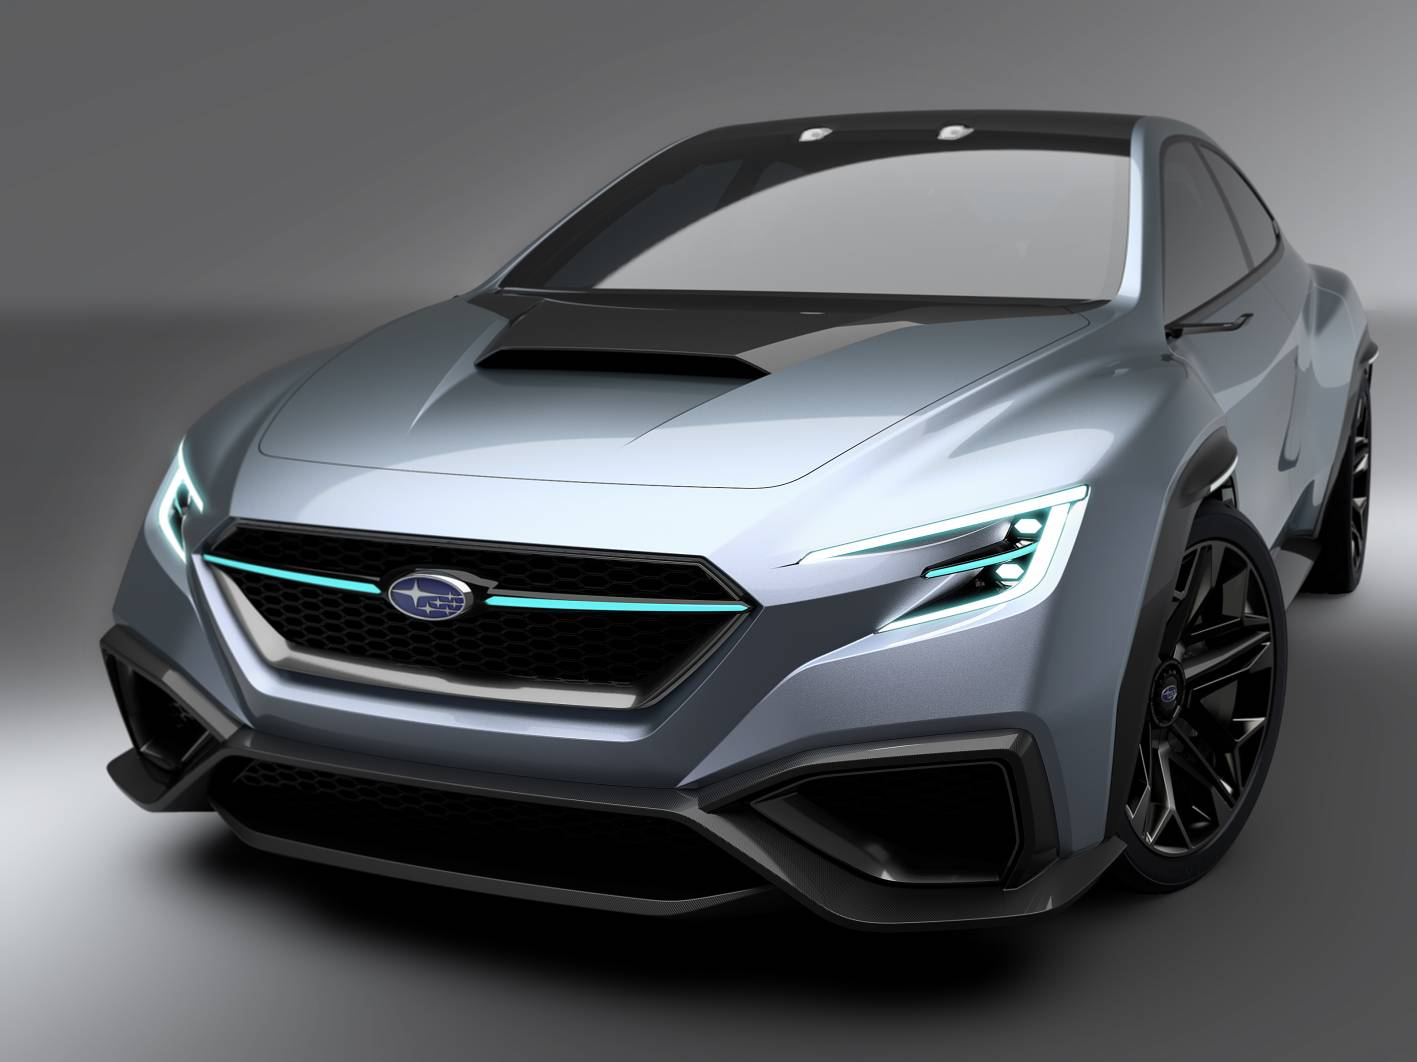 Wrx Hatchback 2019 >> Subaru VIZIV Performance Concept previews next-gen WRX / WRX STI - ForceGT.com